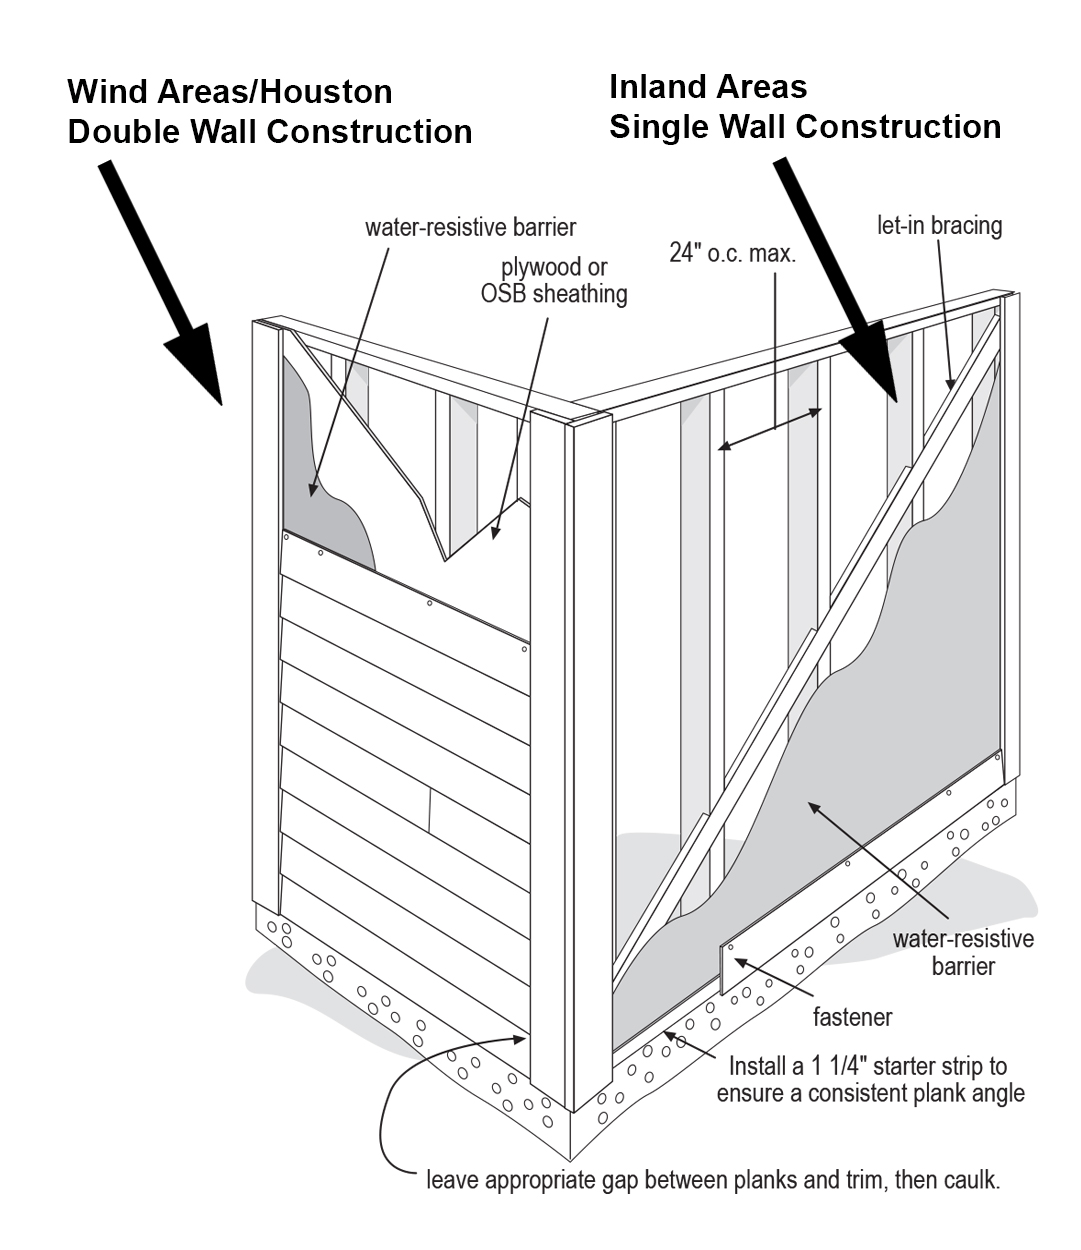 301 moved permanently Structural fiberboard sheathing